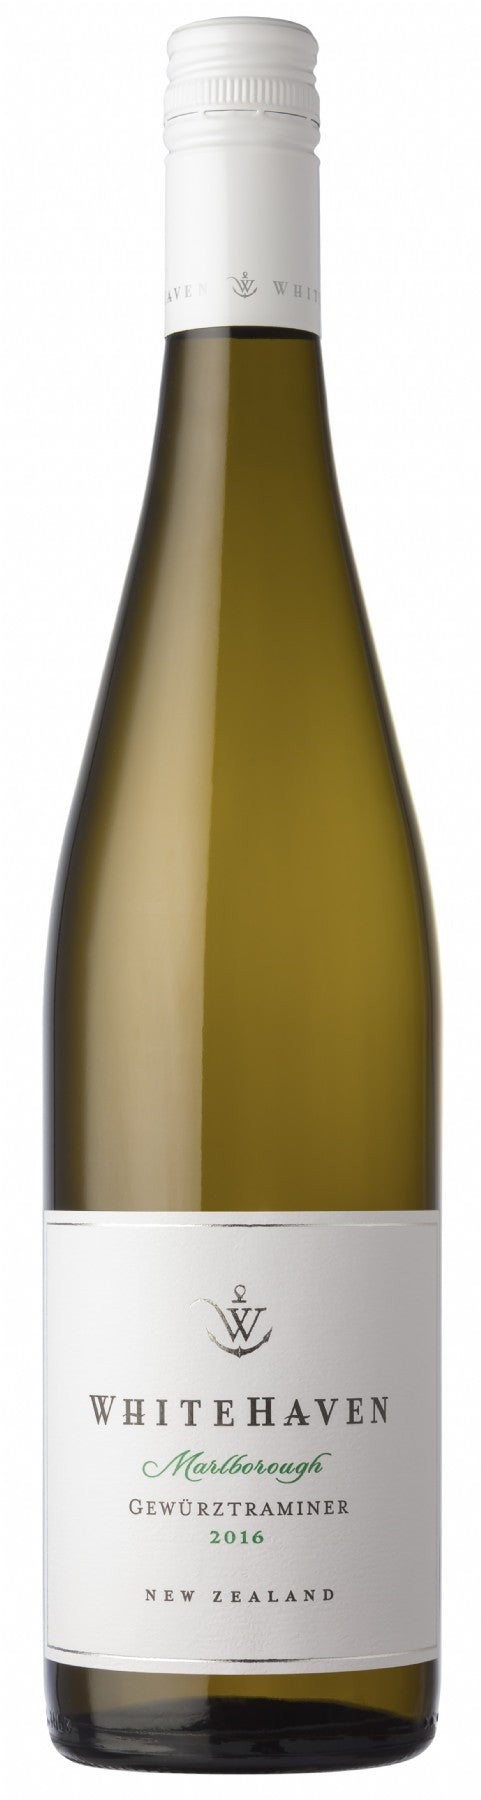 WHITEHAVEN GEWURZTRAMINER MARLBOROUGH 19